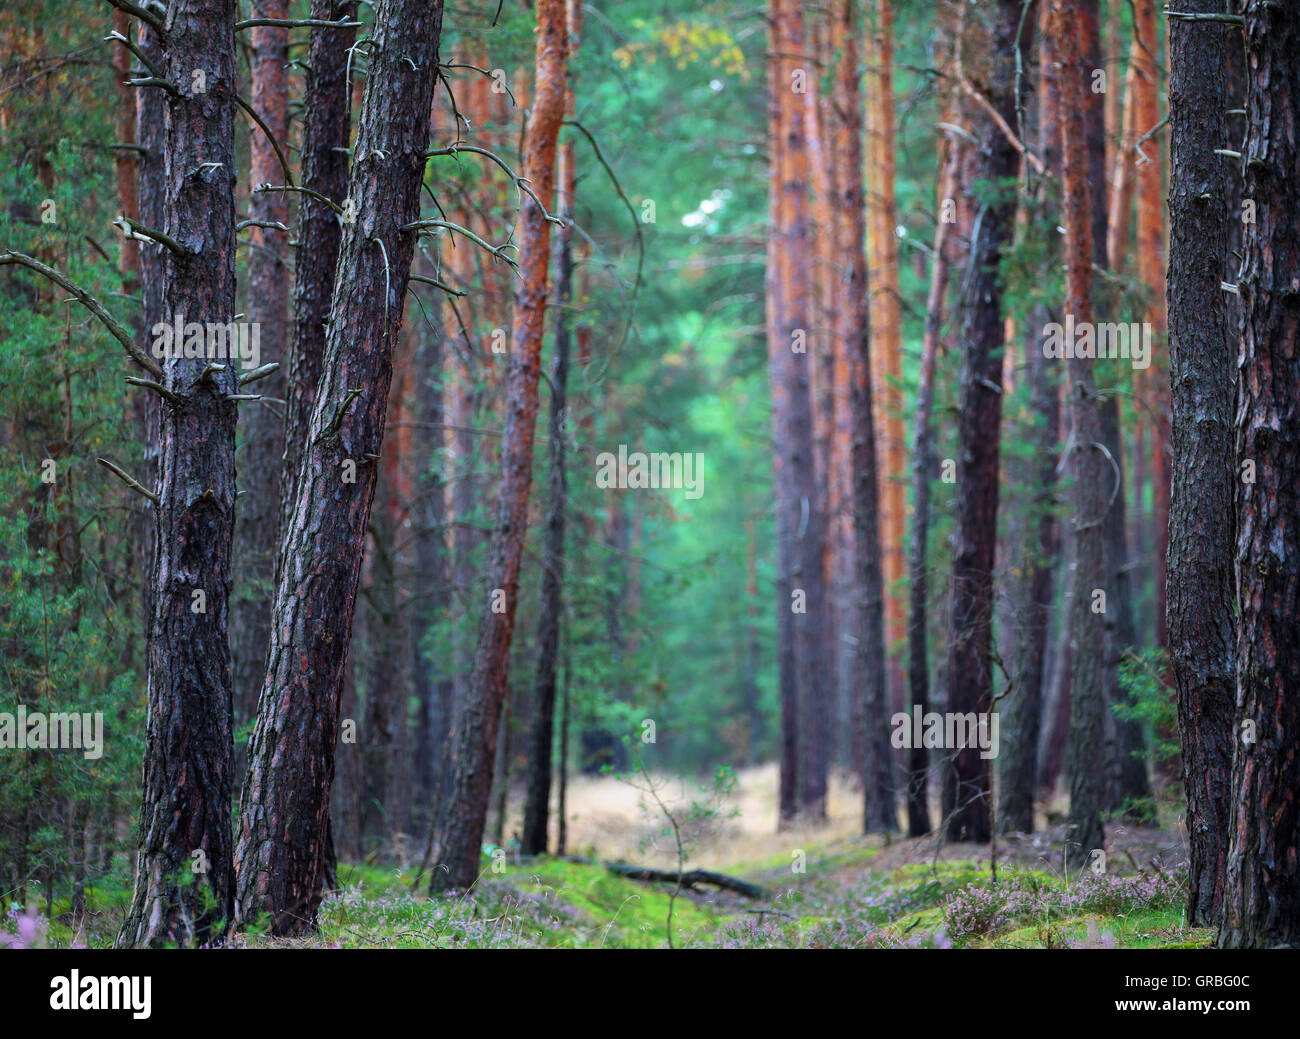 Pine forest - Stock Image